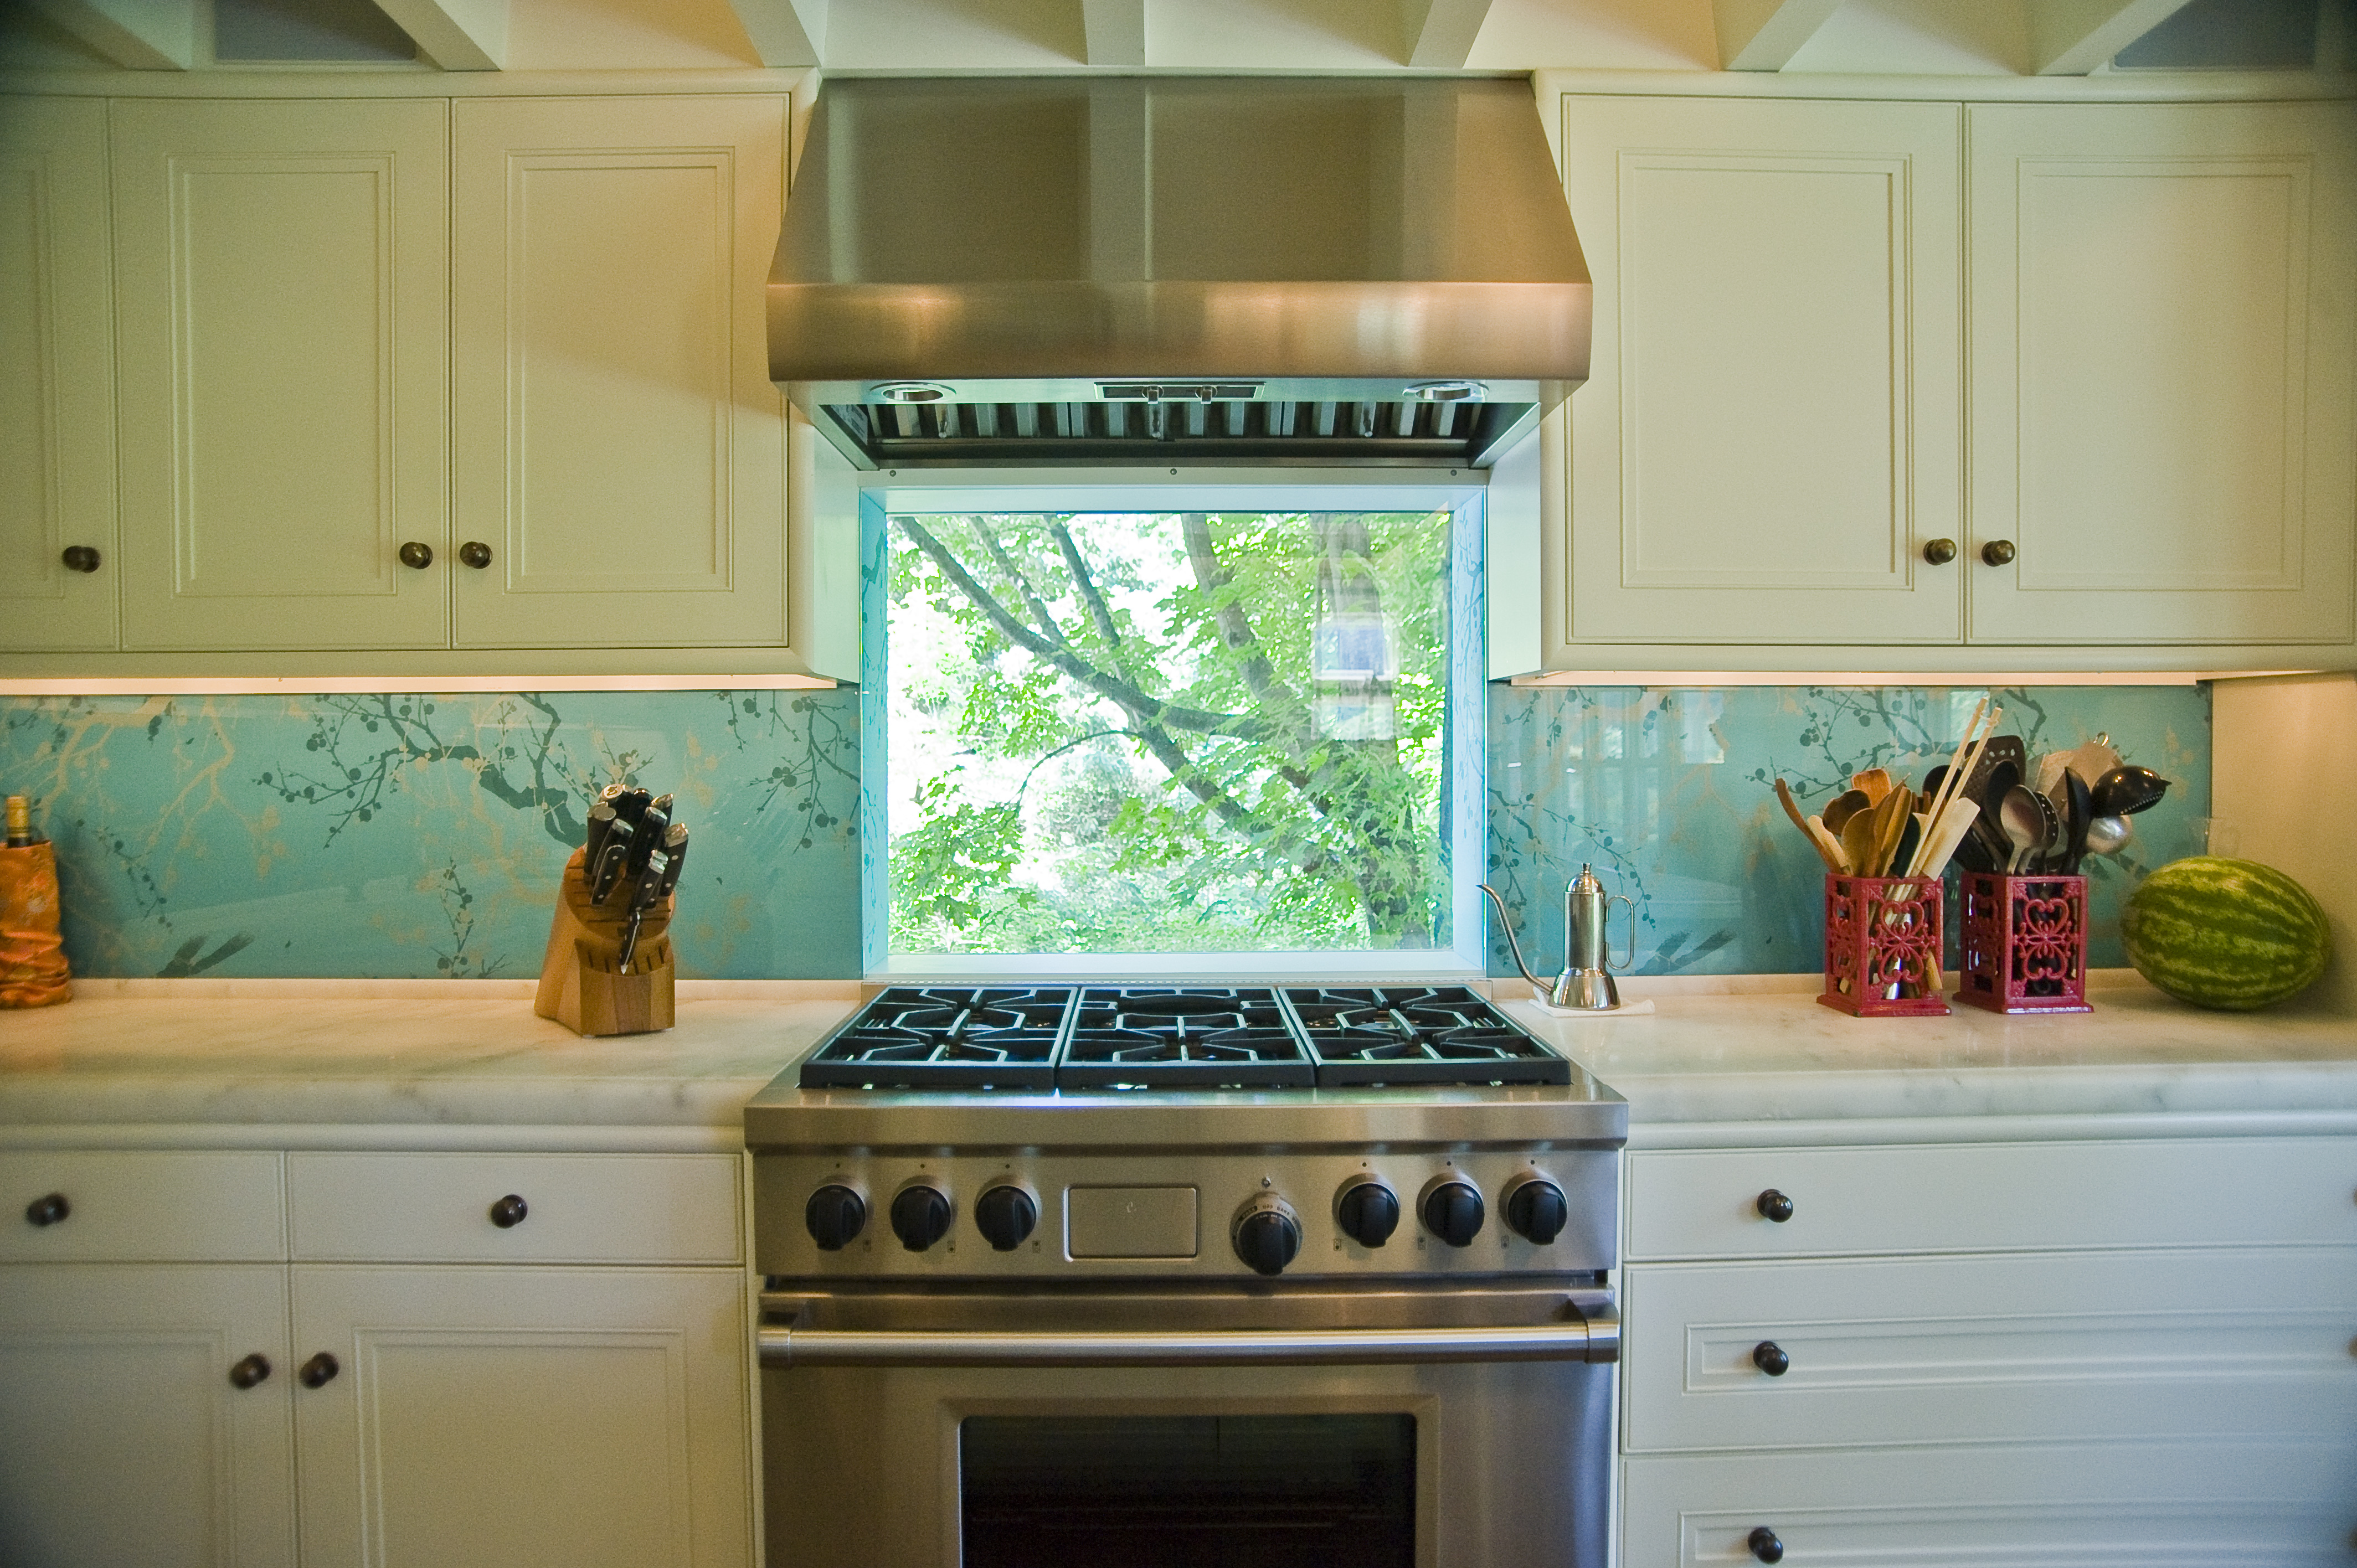 Fabric and glass backsplash